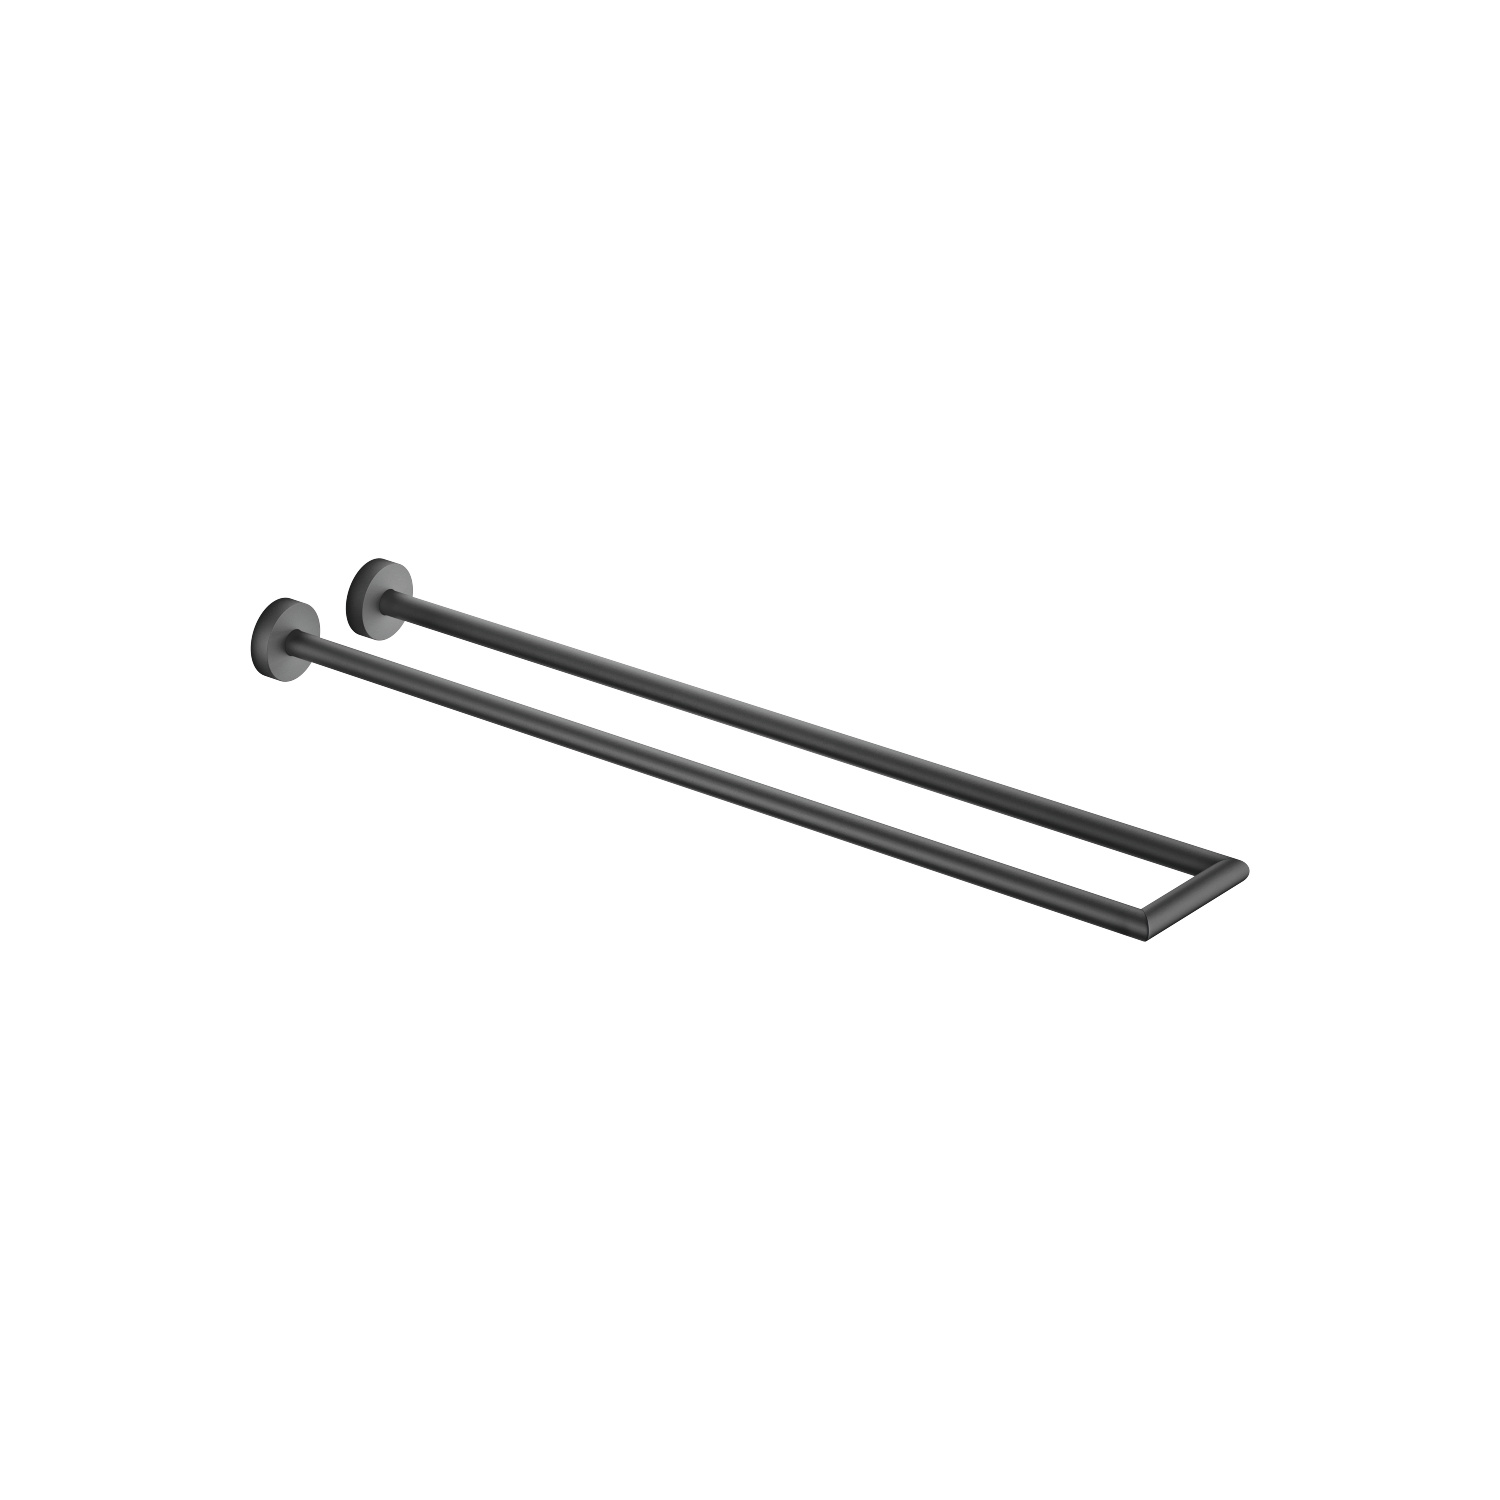 Towel bar in two parts non-swivel - matt black - 83 210 979-33